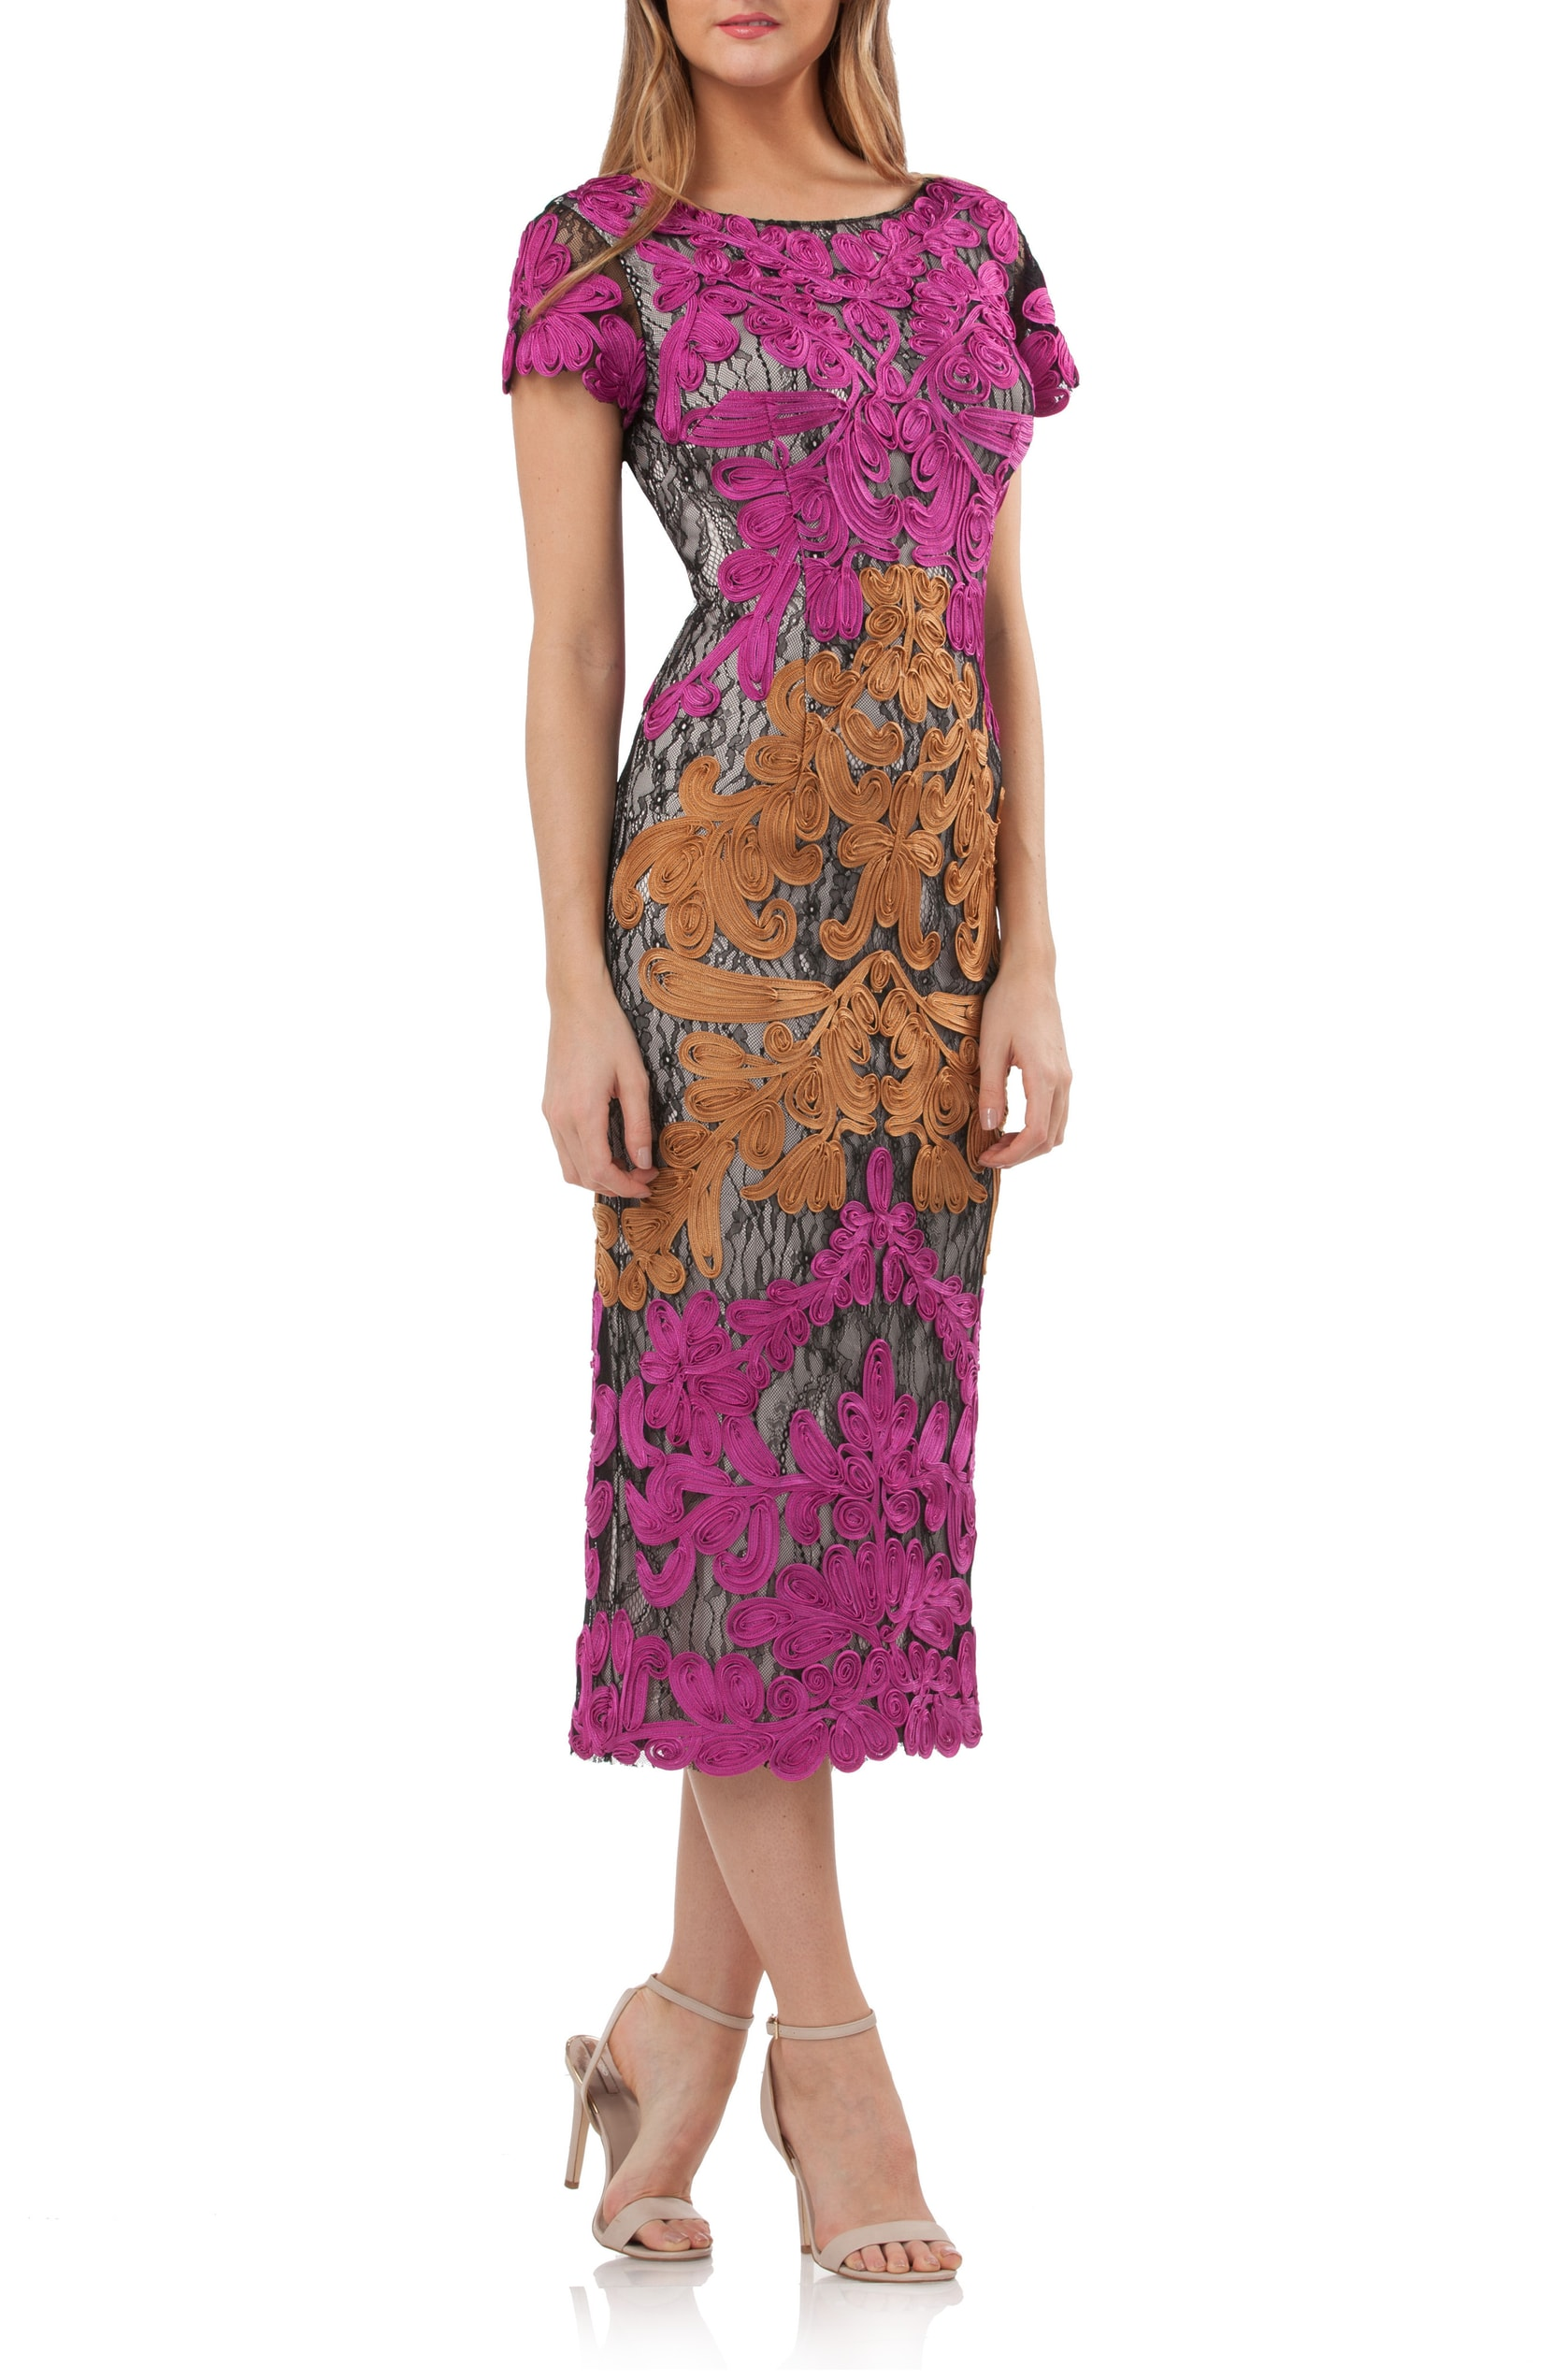 The Trend: Magenta.{&nbsp;} Soutache appliqué scrolls over the bonded-lace foundation of this long, lavish cocktail sheath. It has the perfect pop of magenta color to steal the show. JS COLLECTIONS - $348.00<p>(Image: Nordstrom){&nbsp;}</p>